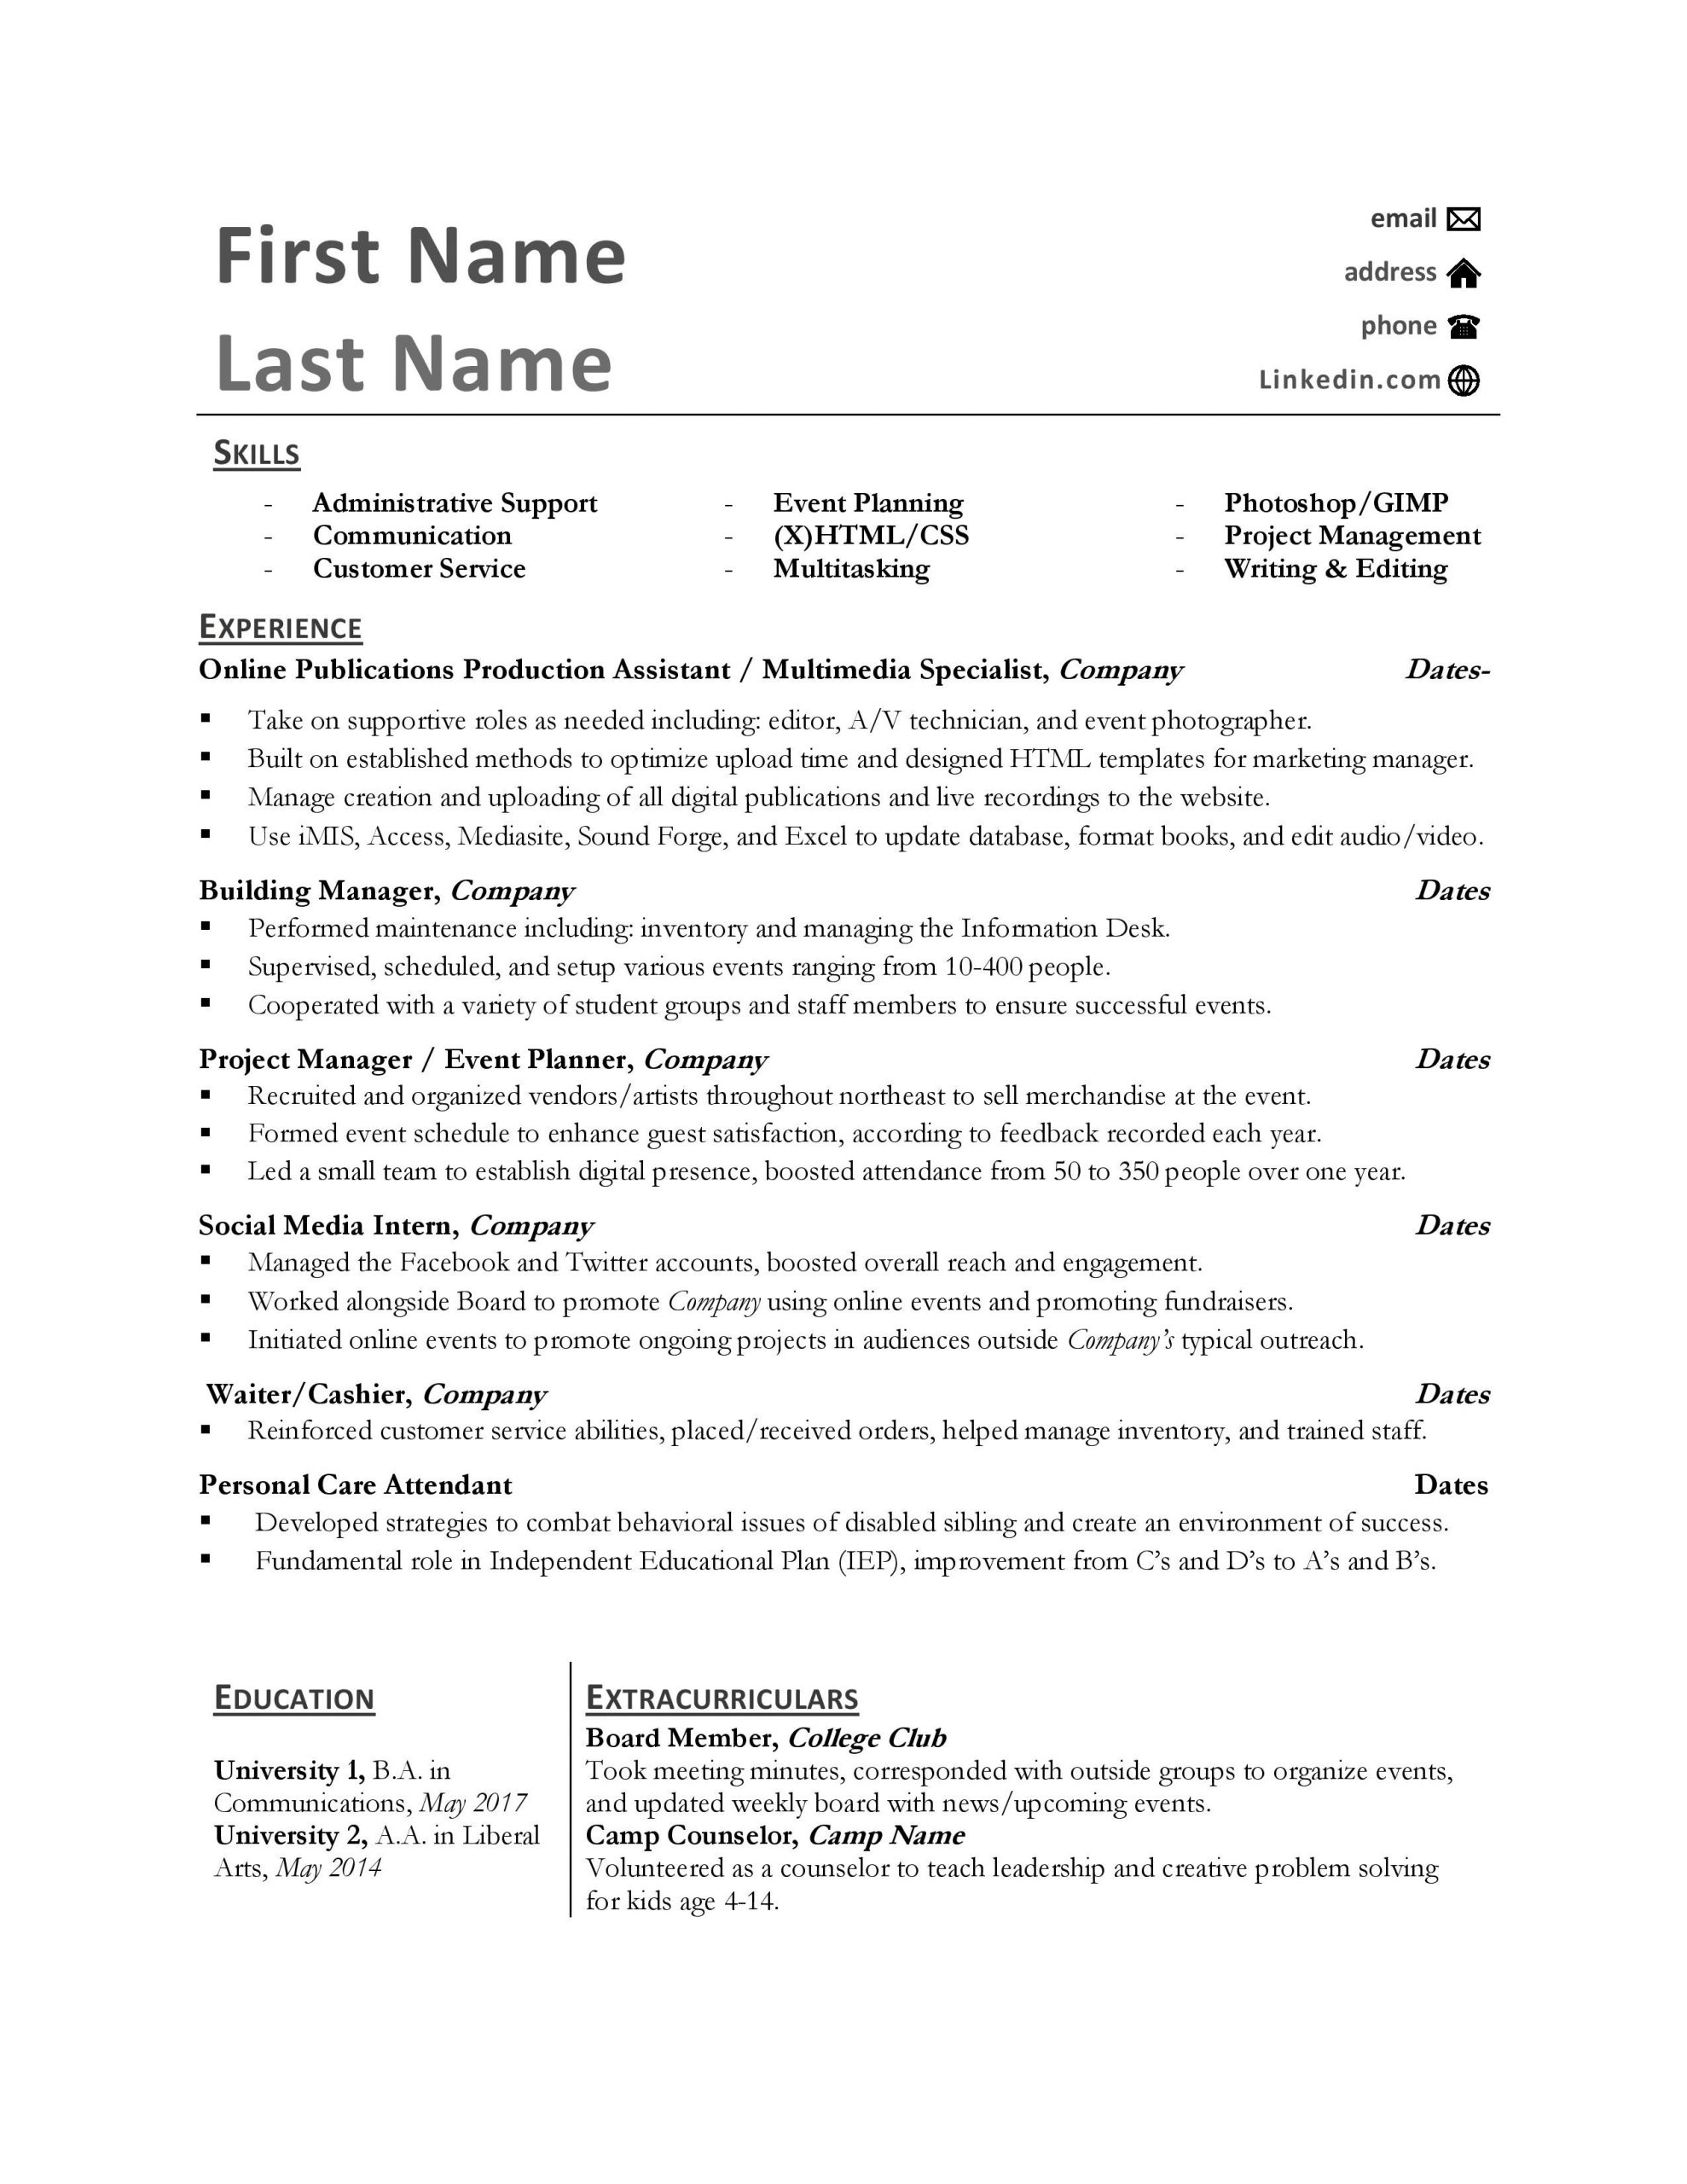 help a recent grad with an awkward resume also